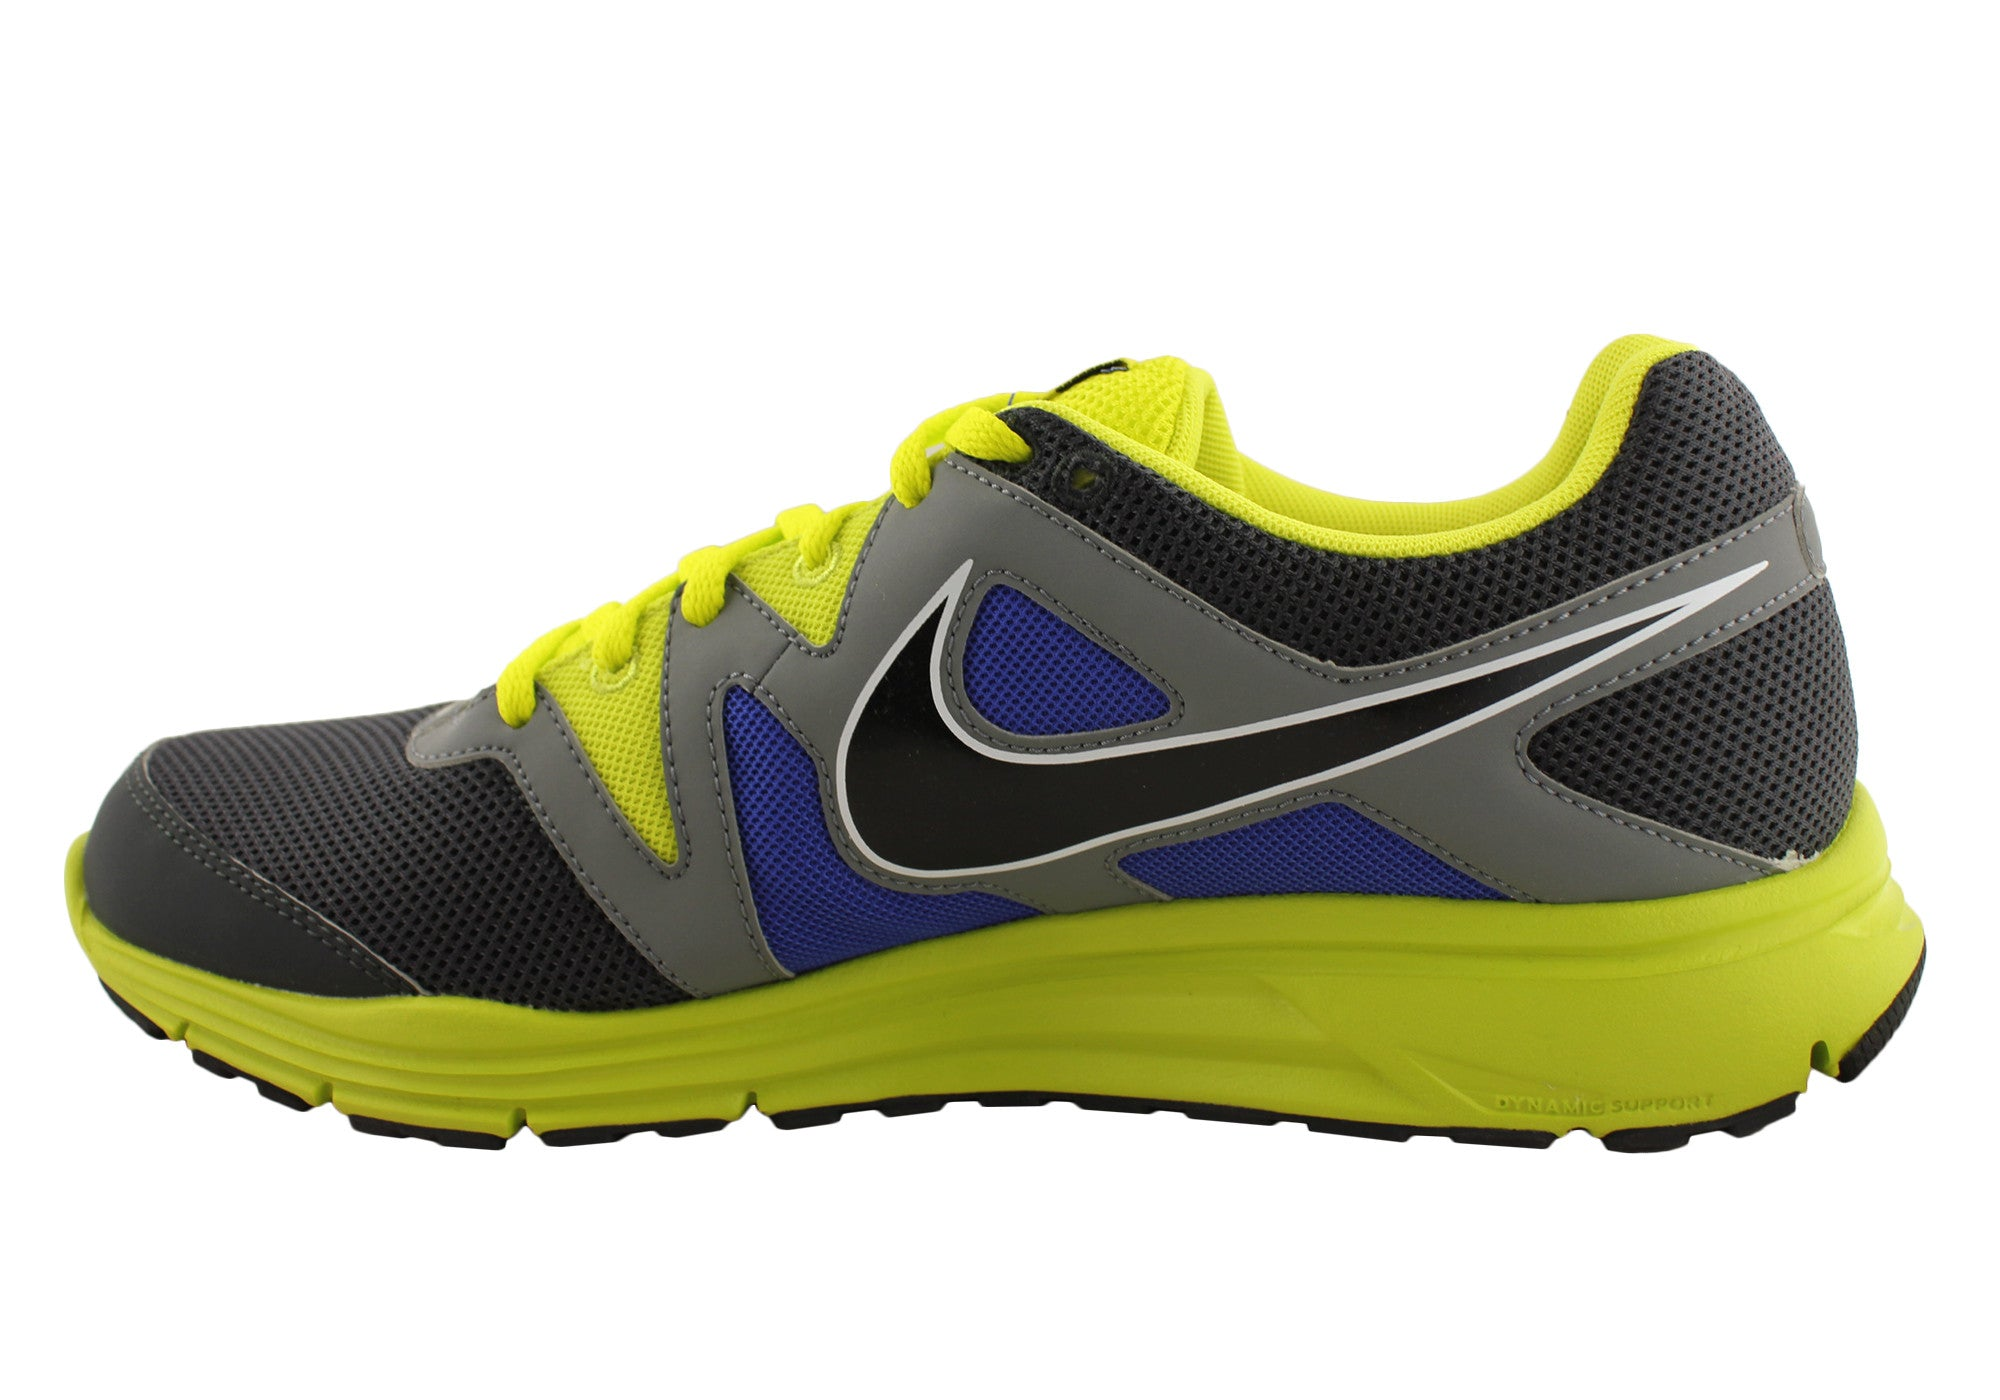 Nike Lunarfly+ 3 Mens Running/Sports Shoes